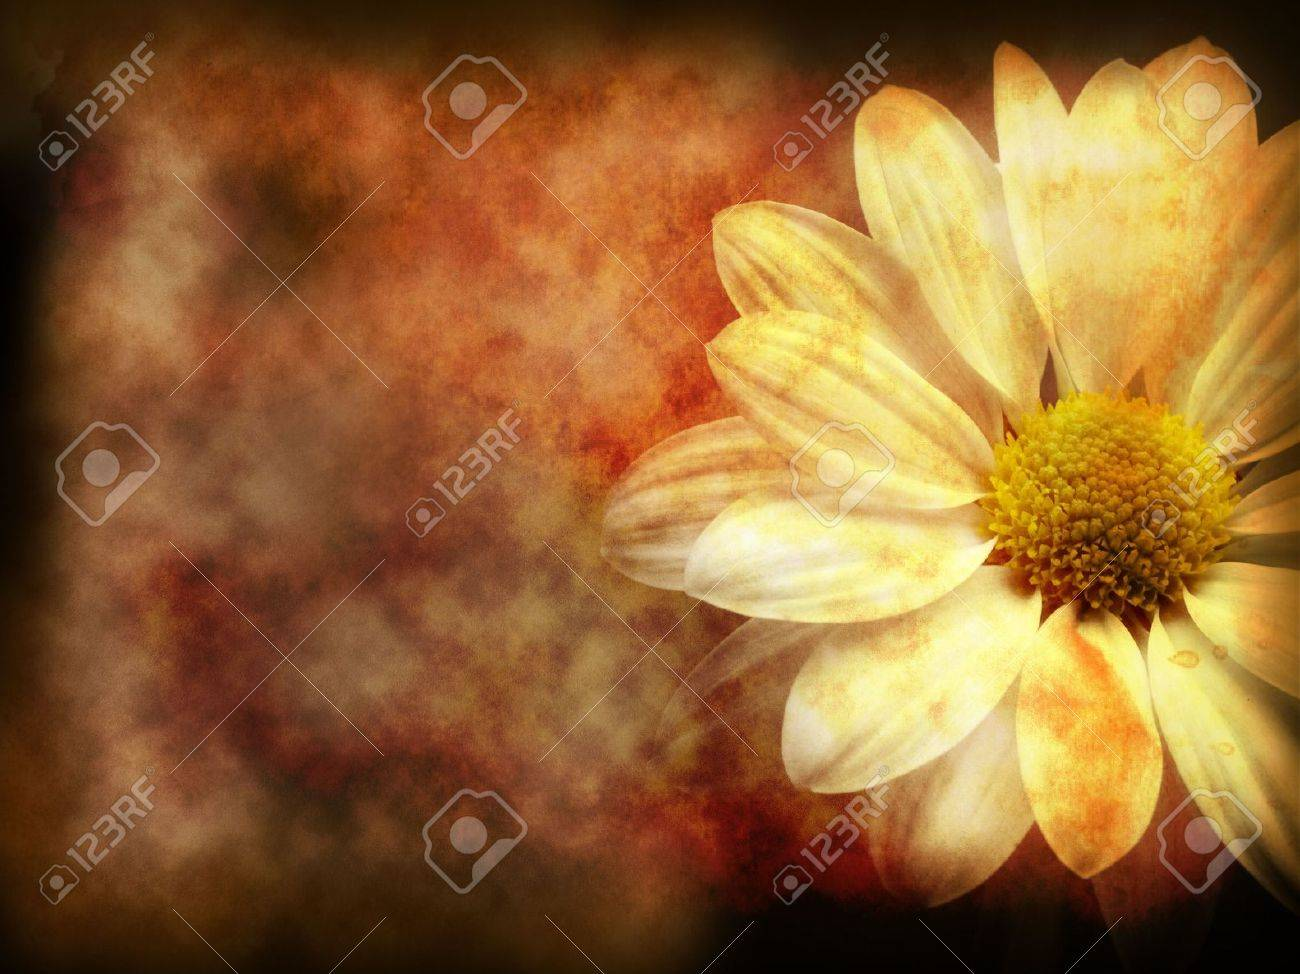 floral grunge background on texture of old paper Stock Photo - 6757567